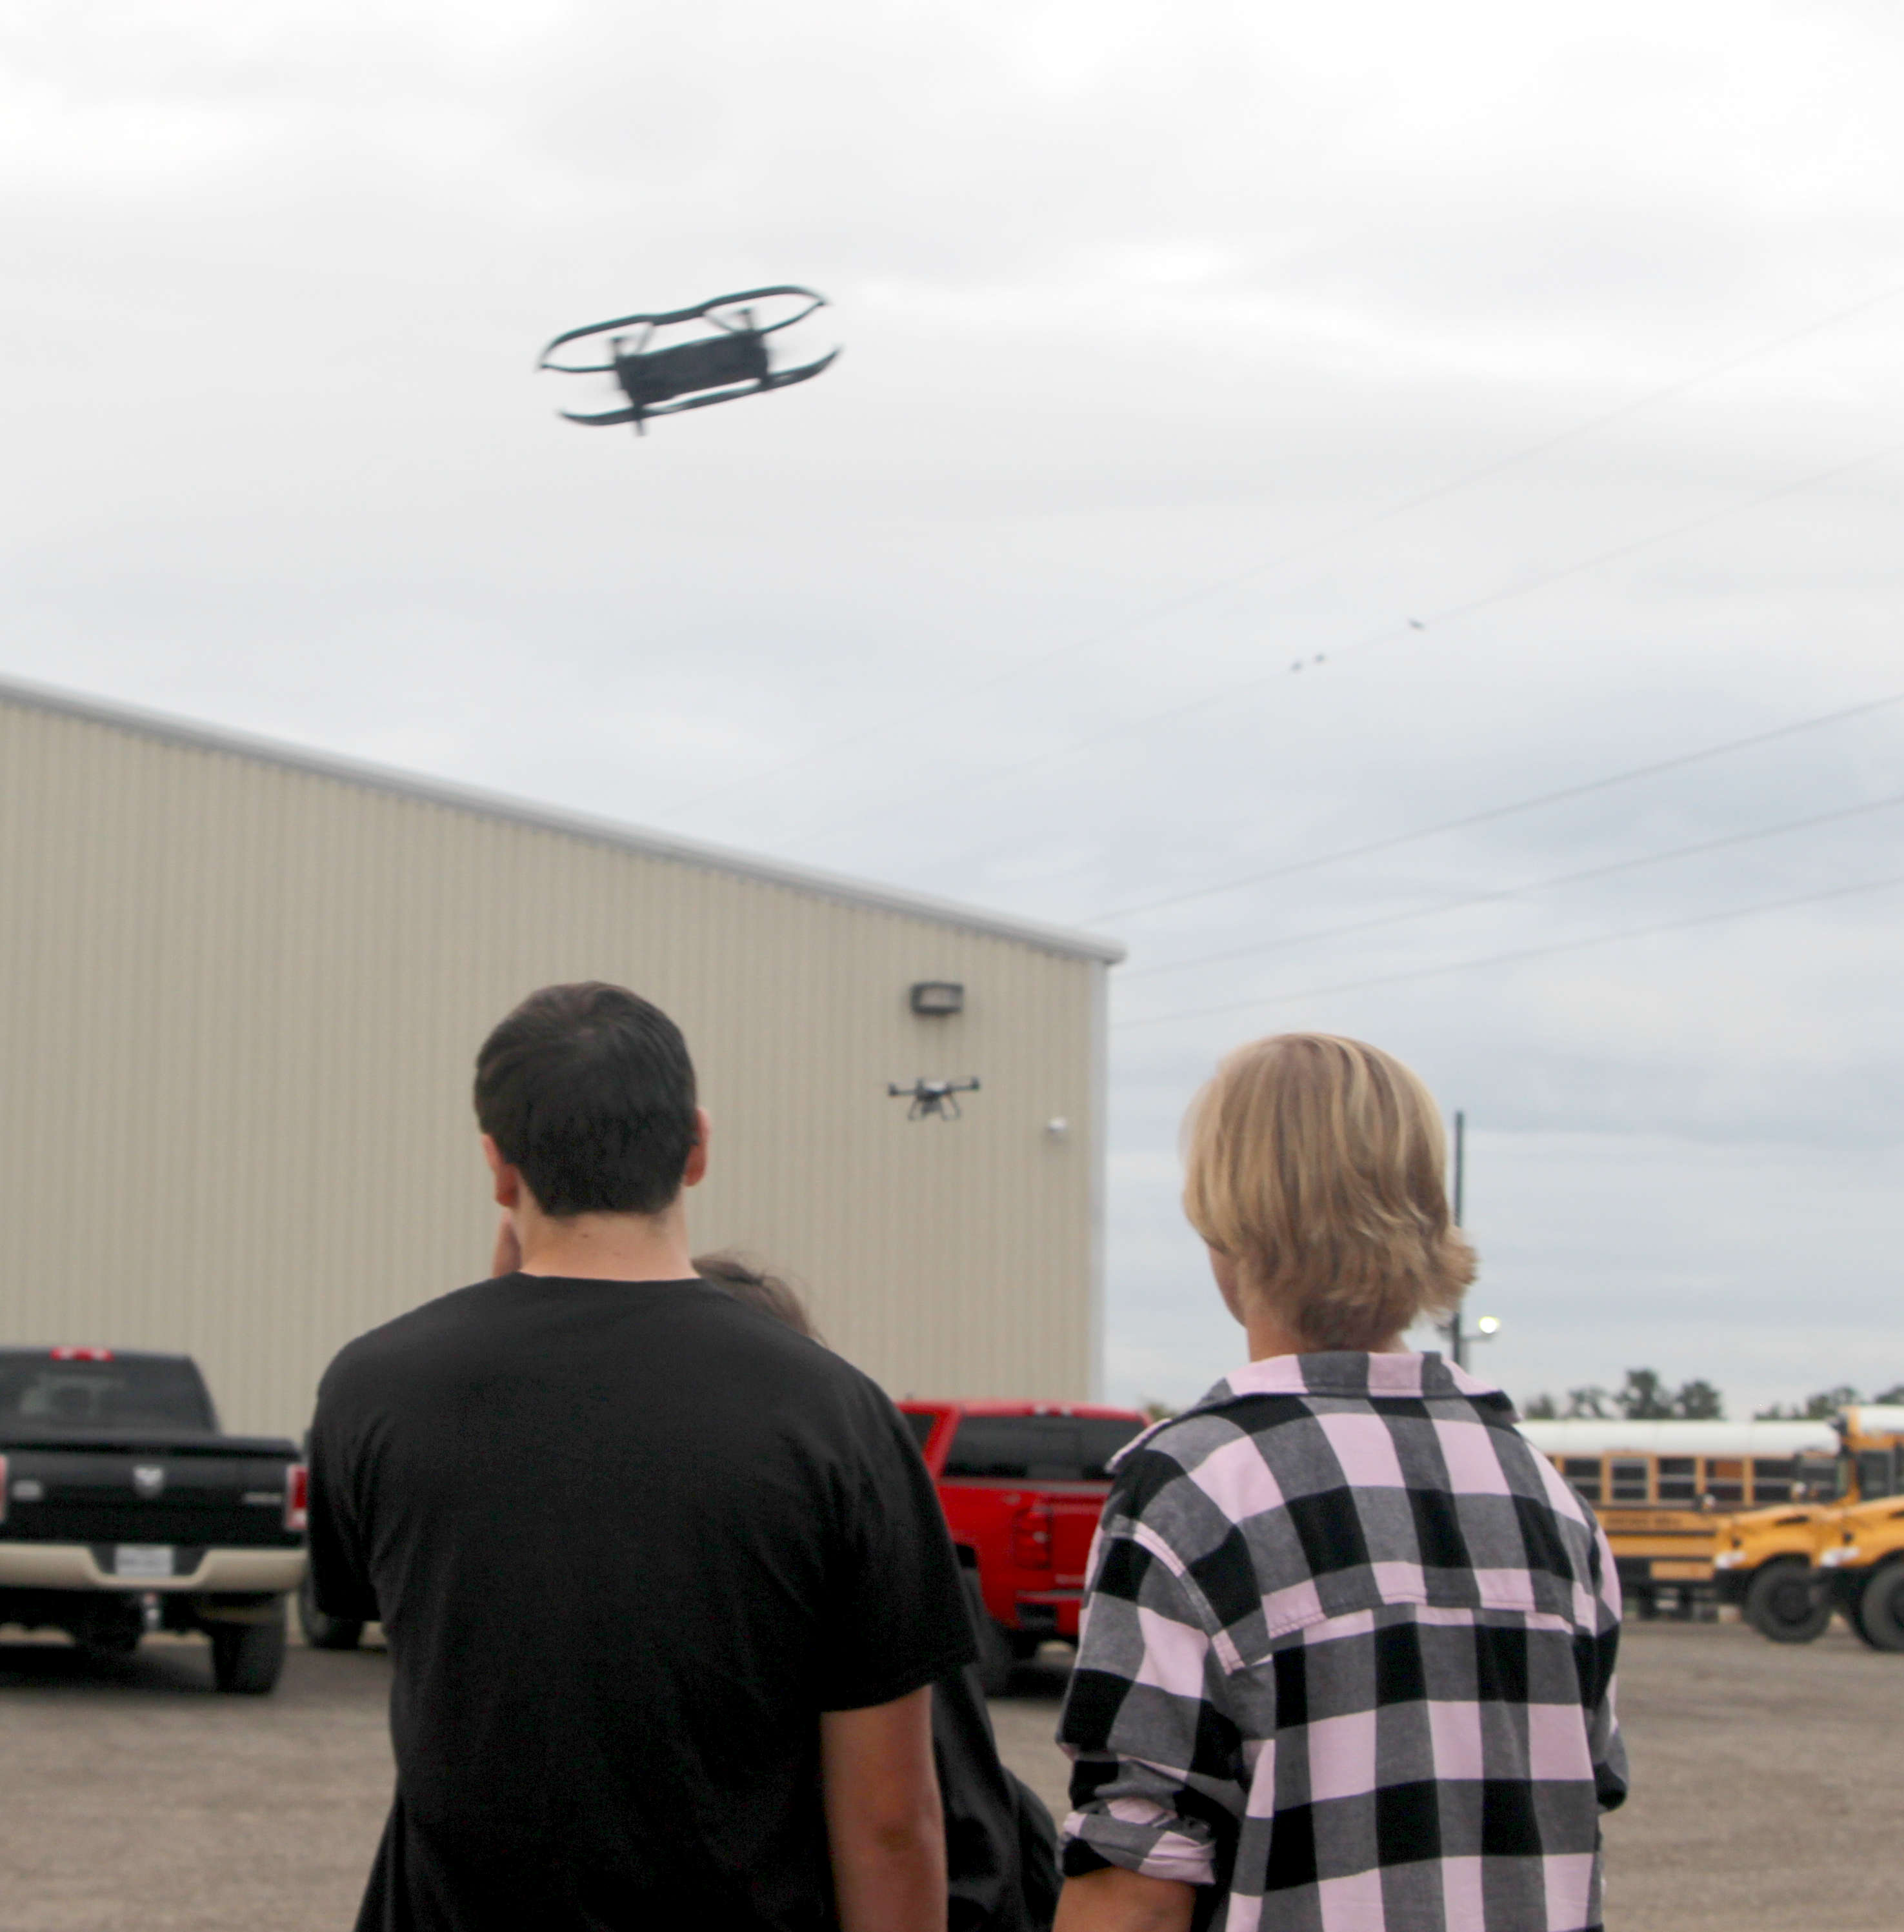 UAV class takes drones for first flight.